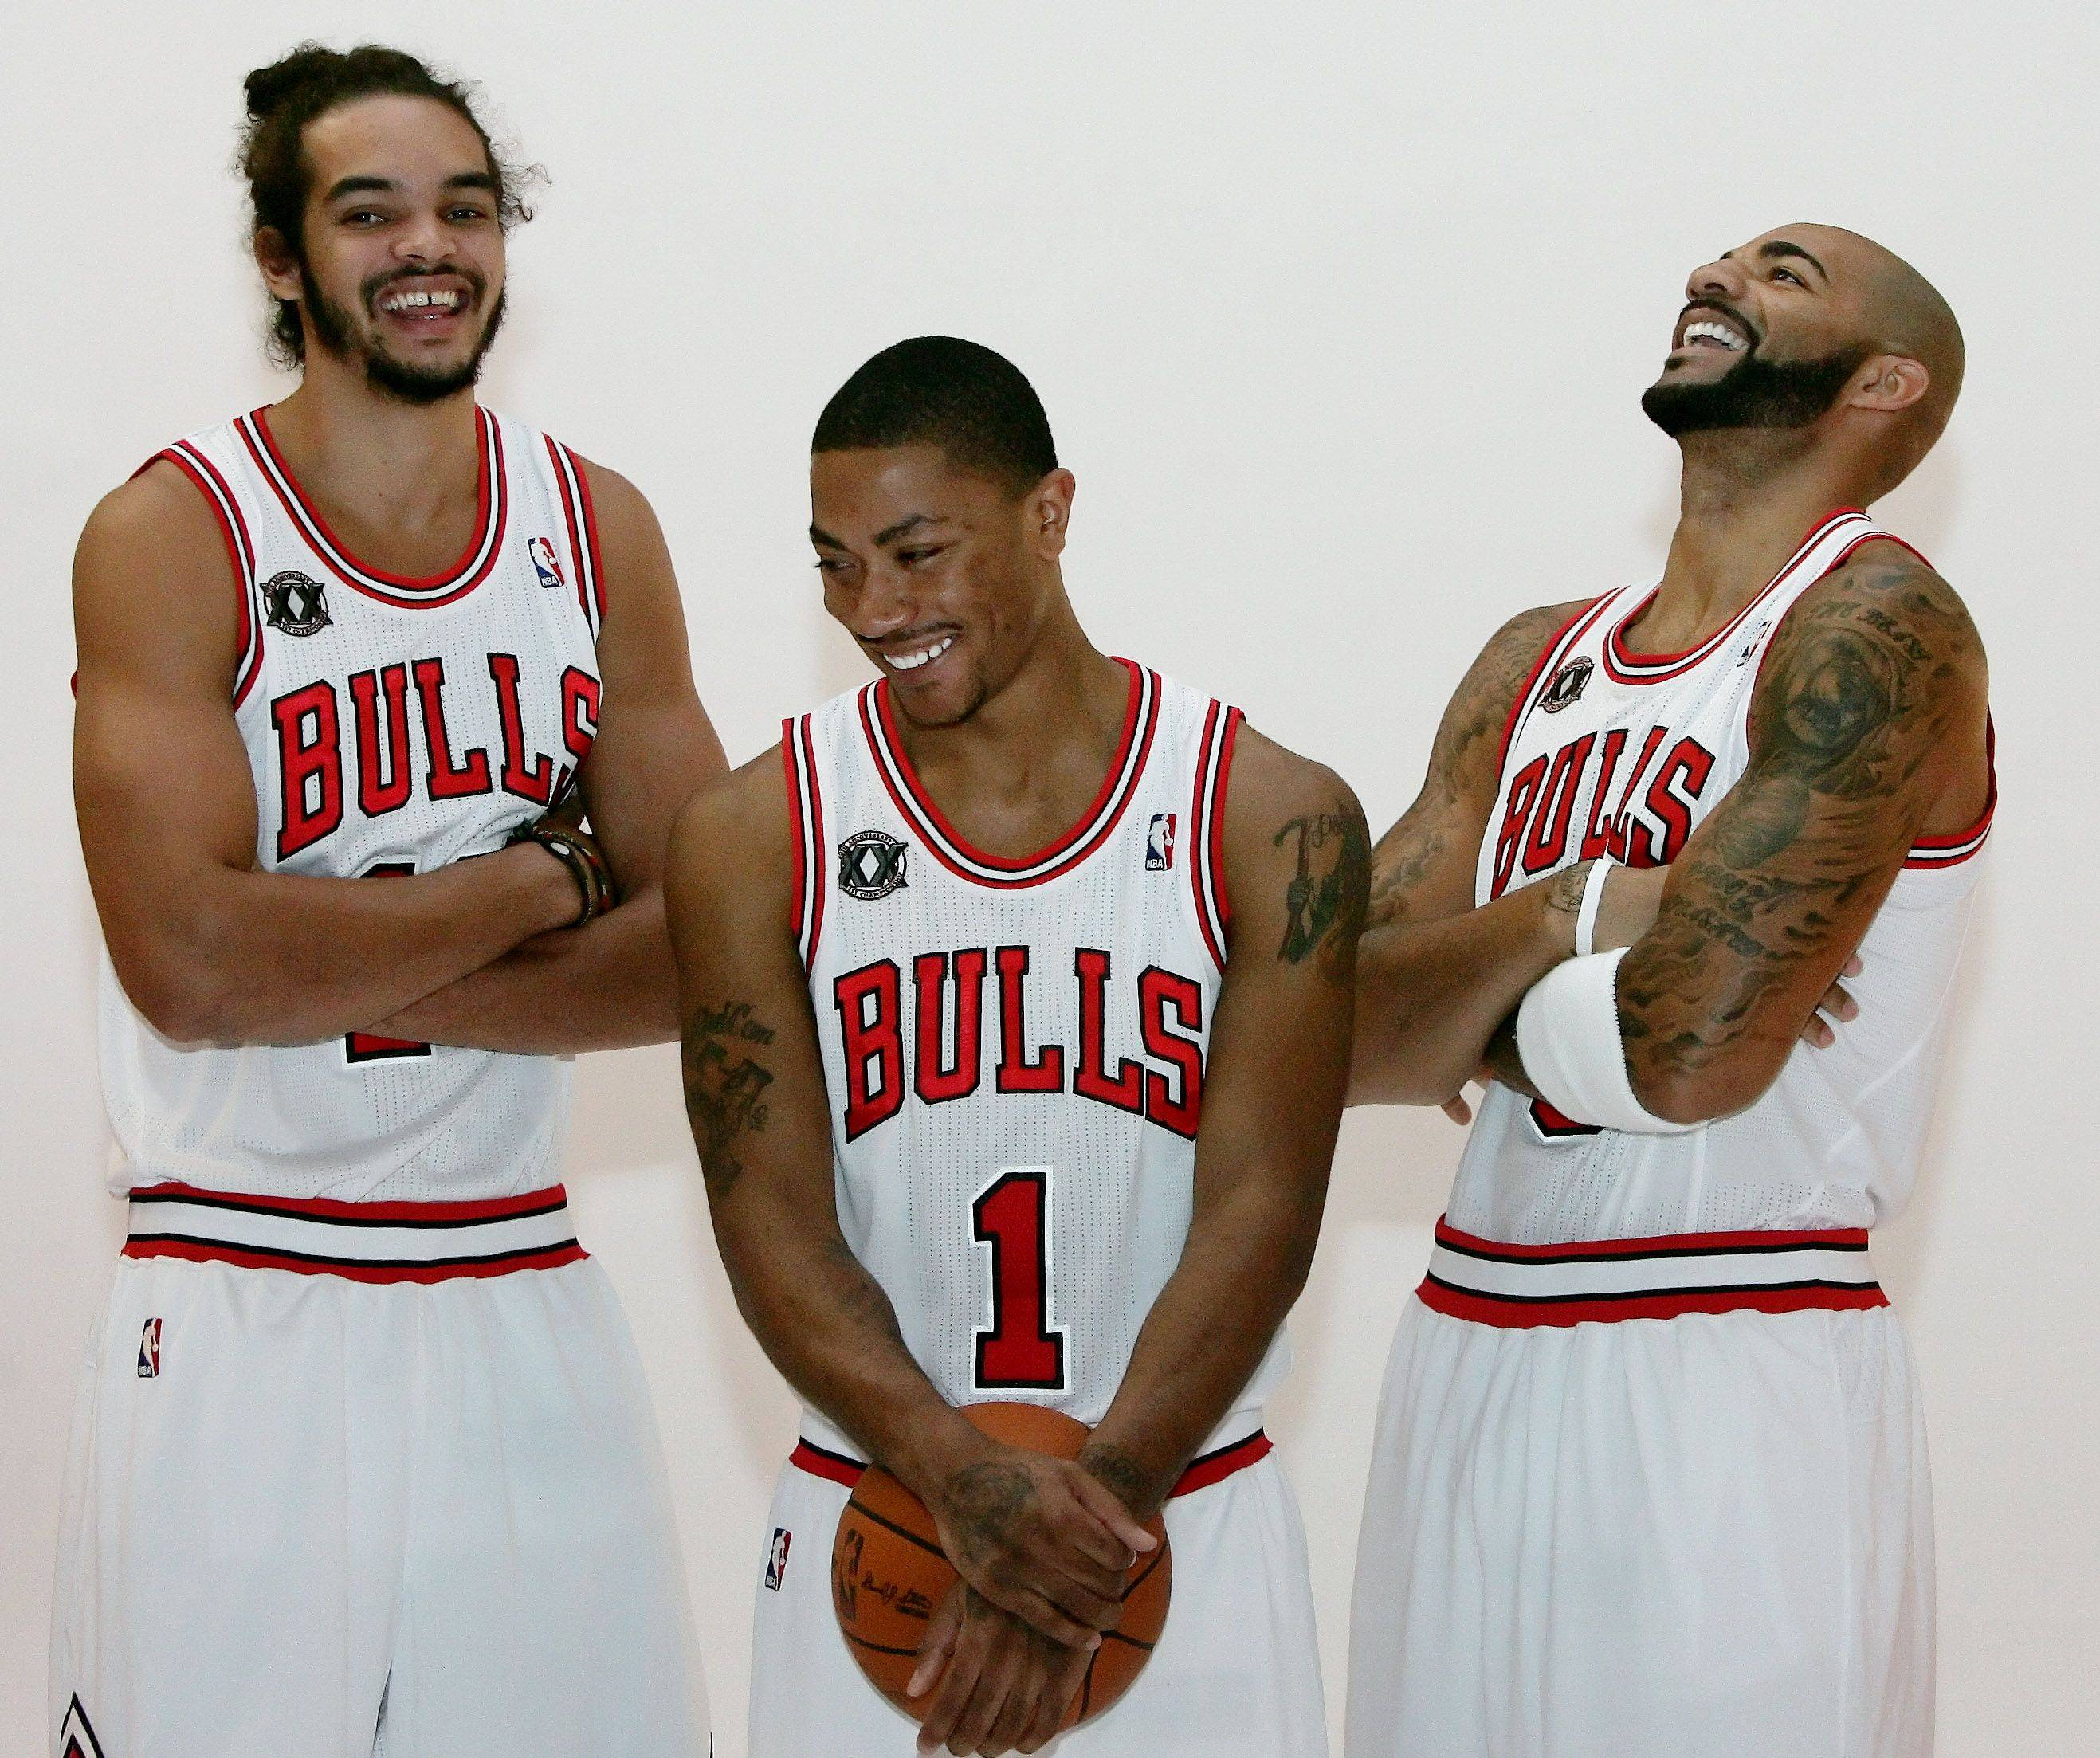 Joakim Noah, left, Derrick Rose, and Carlos Boozer joke around as they pose for pictures during the Chicago Bulls Media Day at the Berto Center in Deerfield.